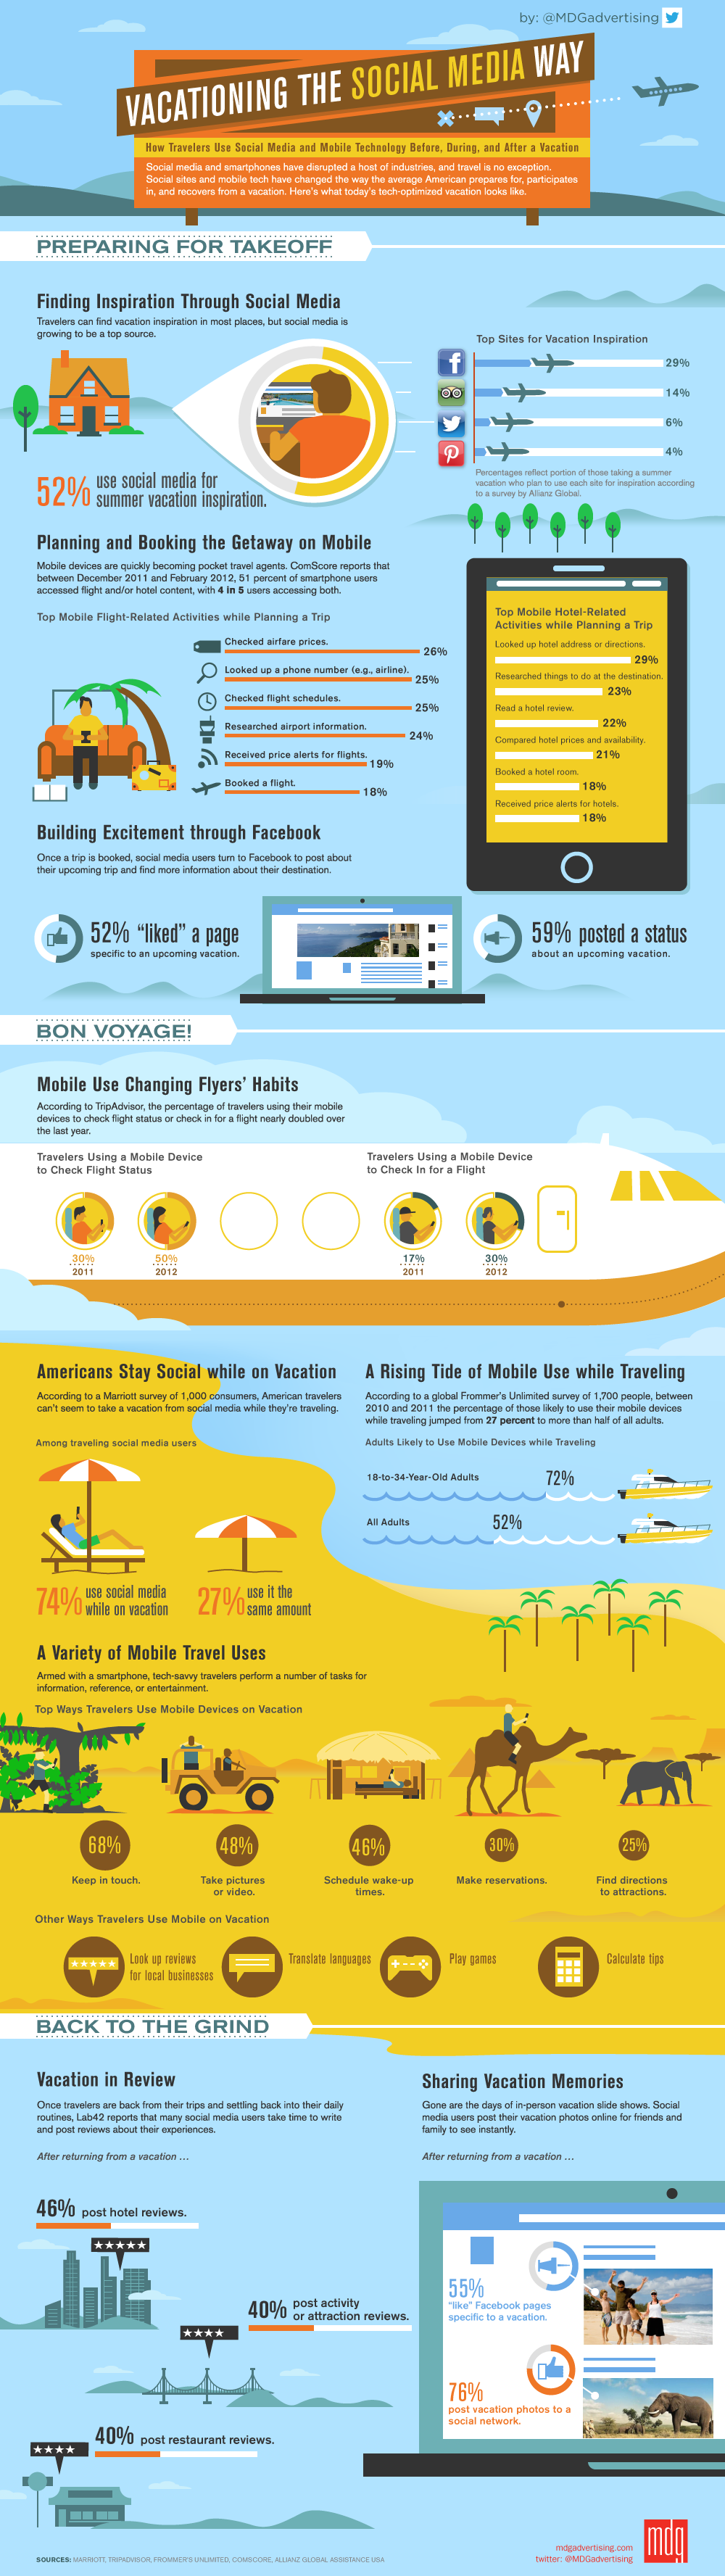 Vacationing The Social Media Way [infographic by MDG Advertising]